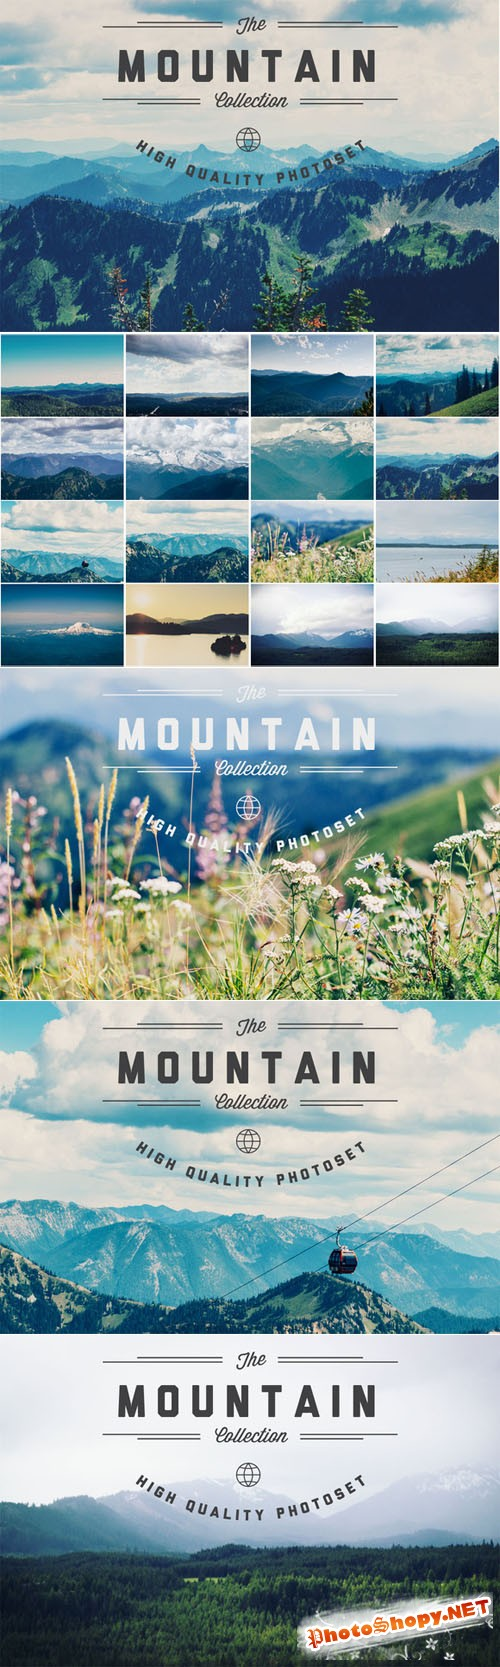 Mountains - Hi Res Photoset - Creativemarket 75386